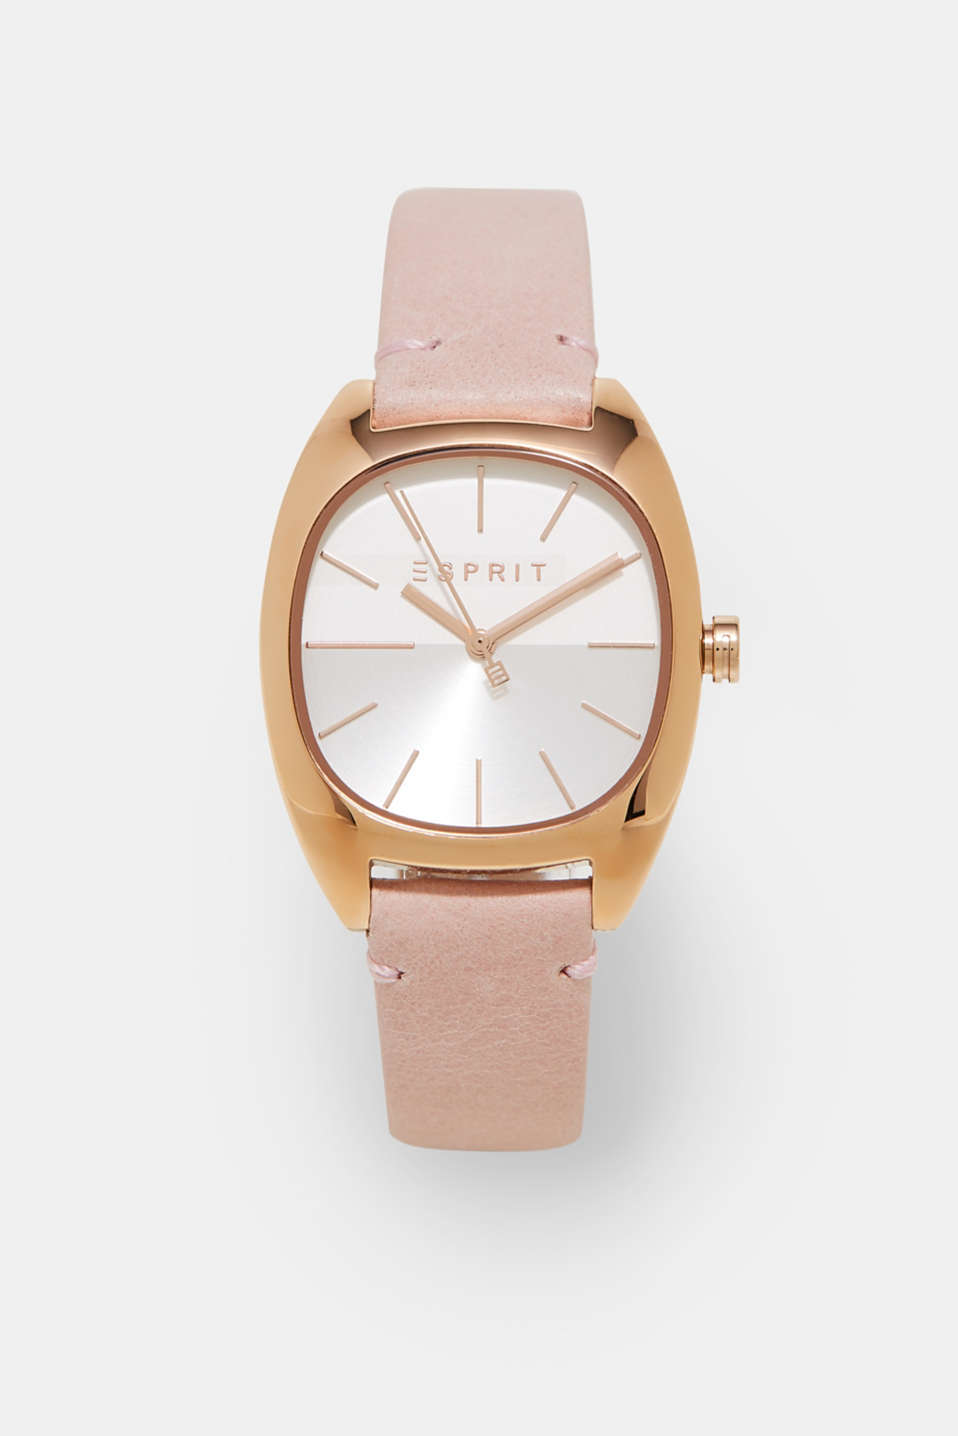 Esprit - Rose gold watch with a leather strap